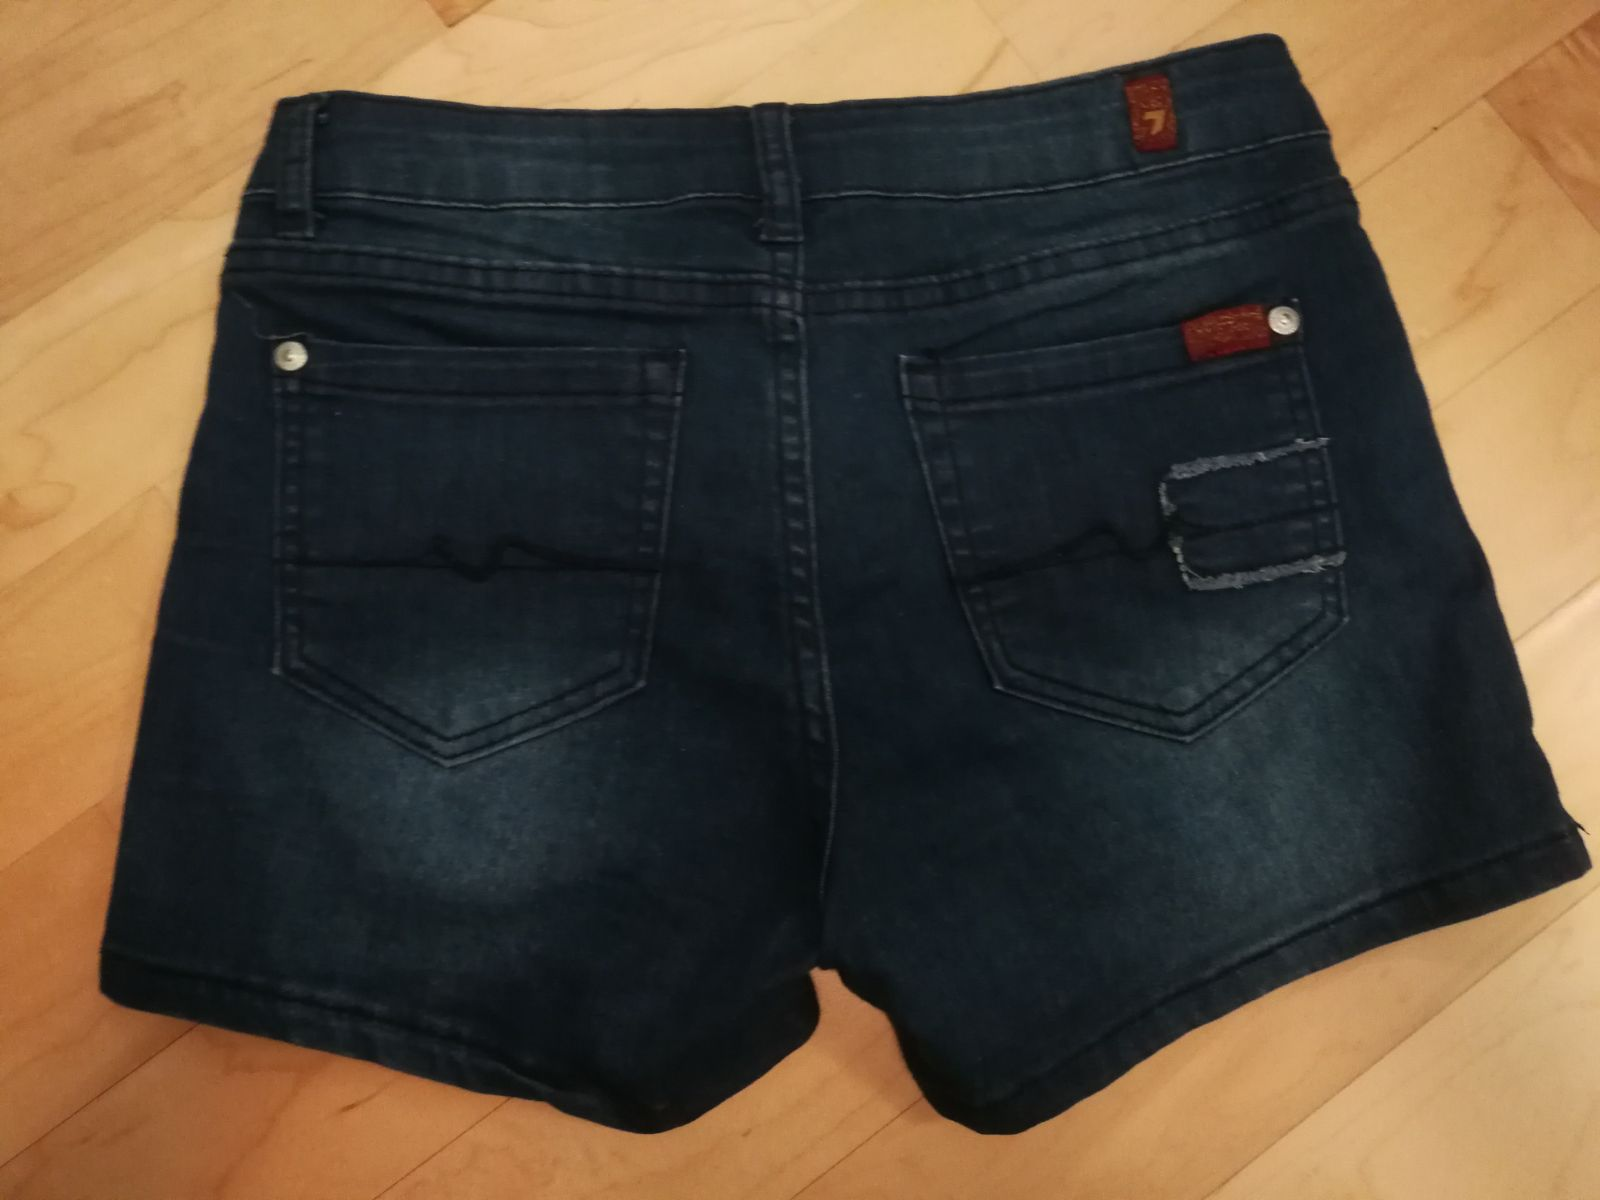 seven for all mankind girls jeans shorts